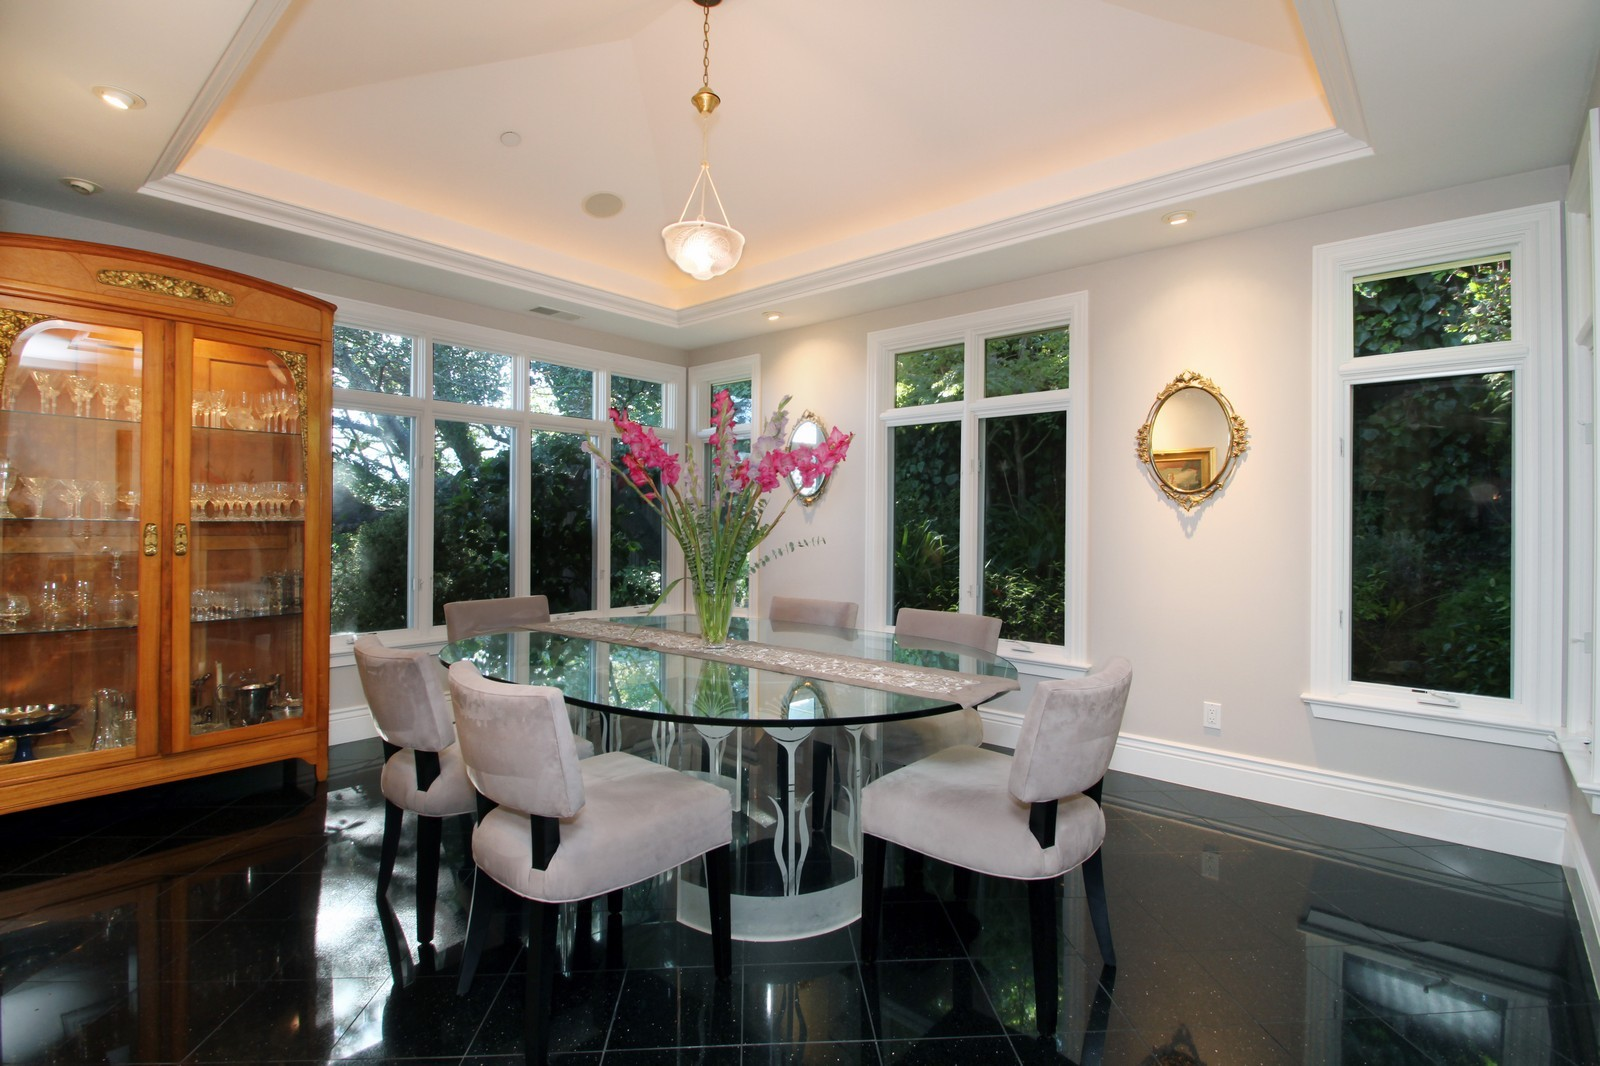 Real Estate Photography - 73 Upper Toyon Drive, Kentfield, CA, 94904 - Dining Room